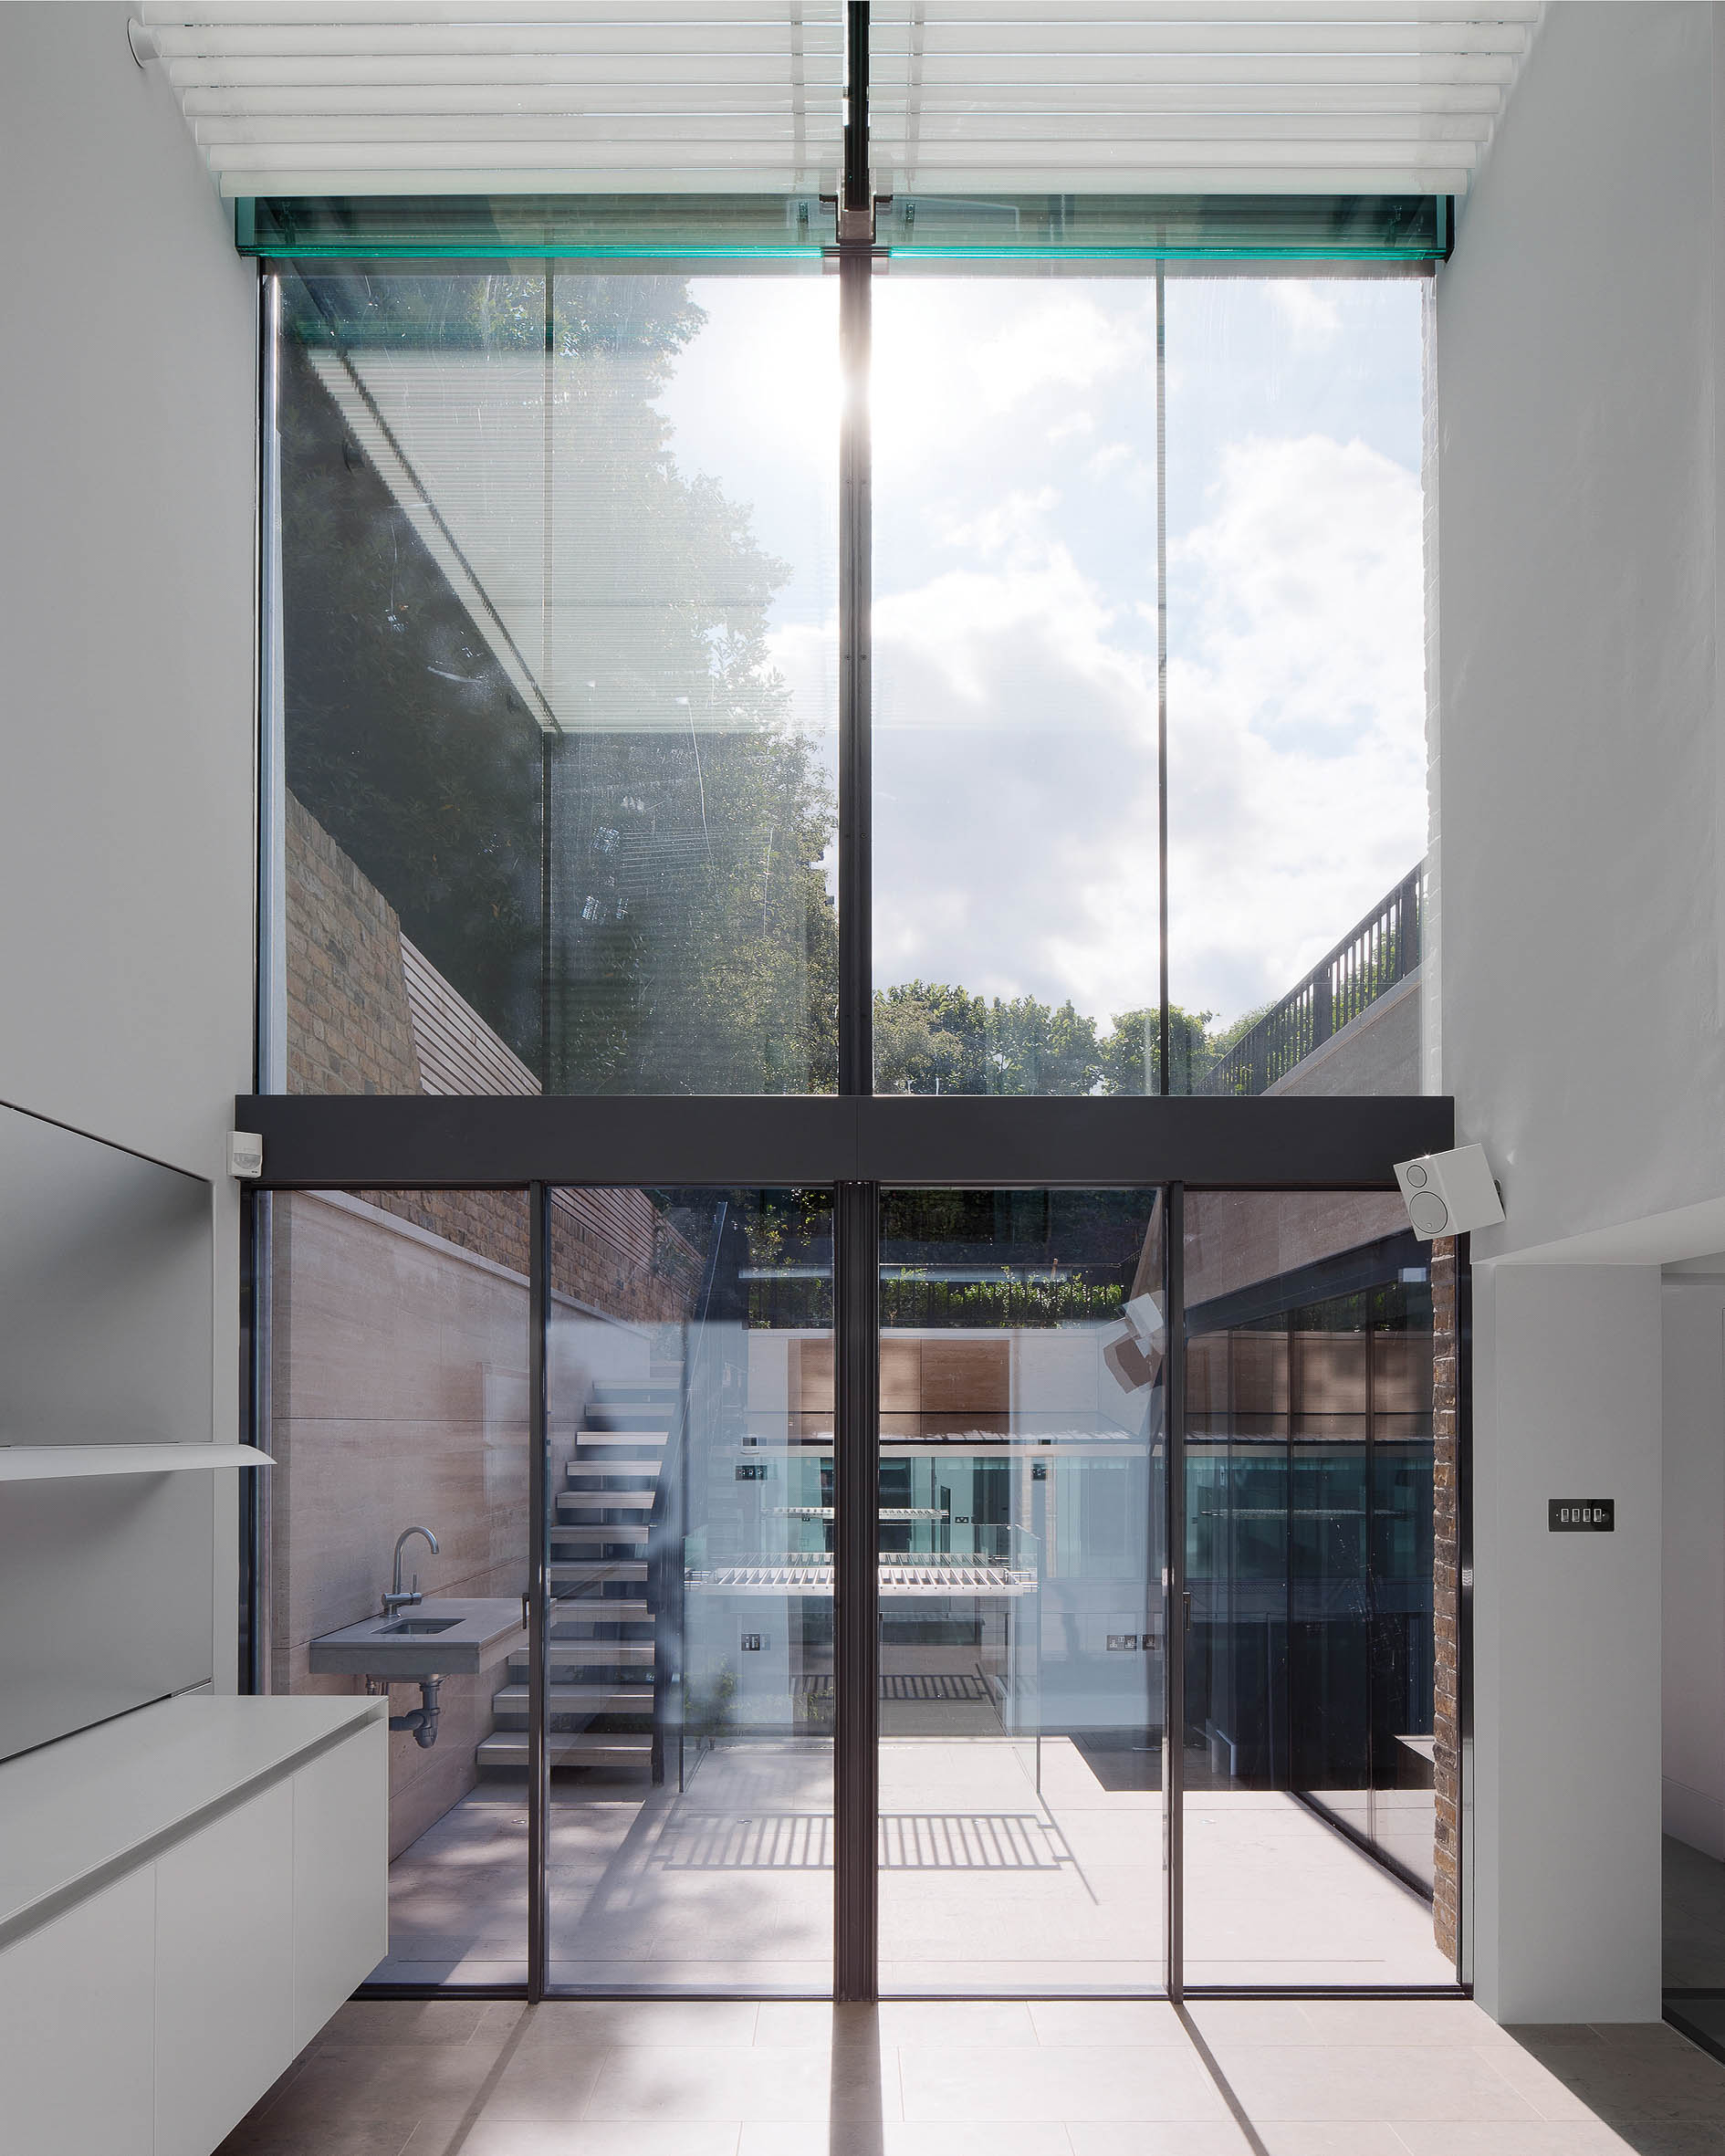 Looking through the double height kitchen and living space into the garden